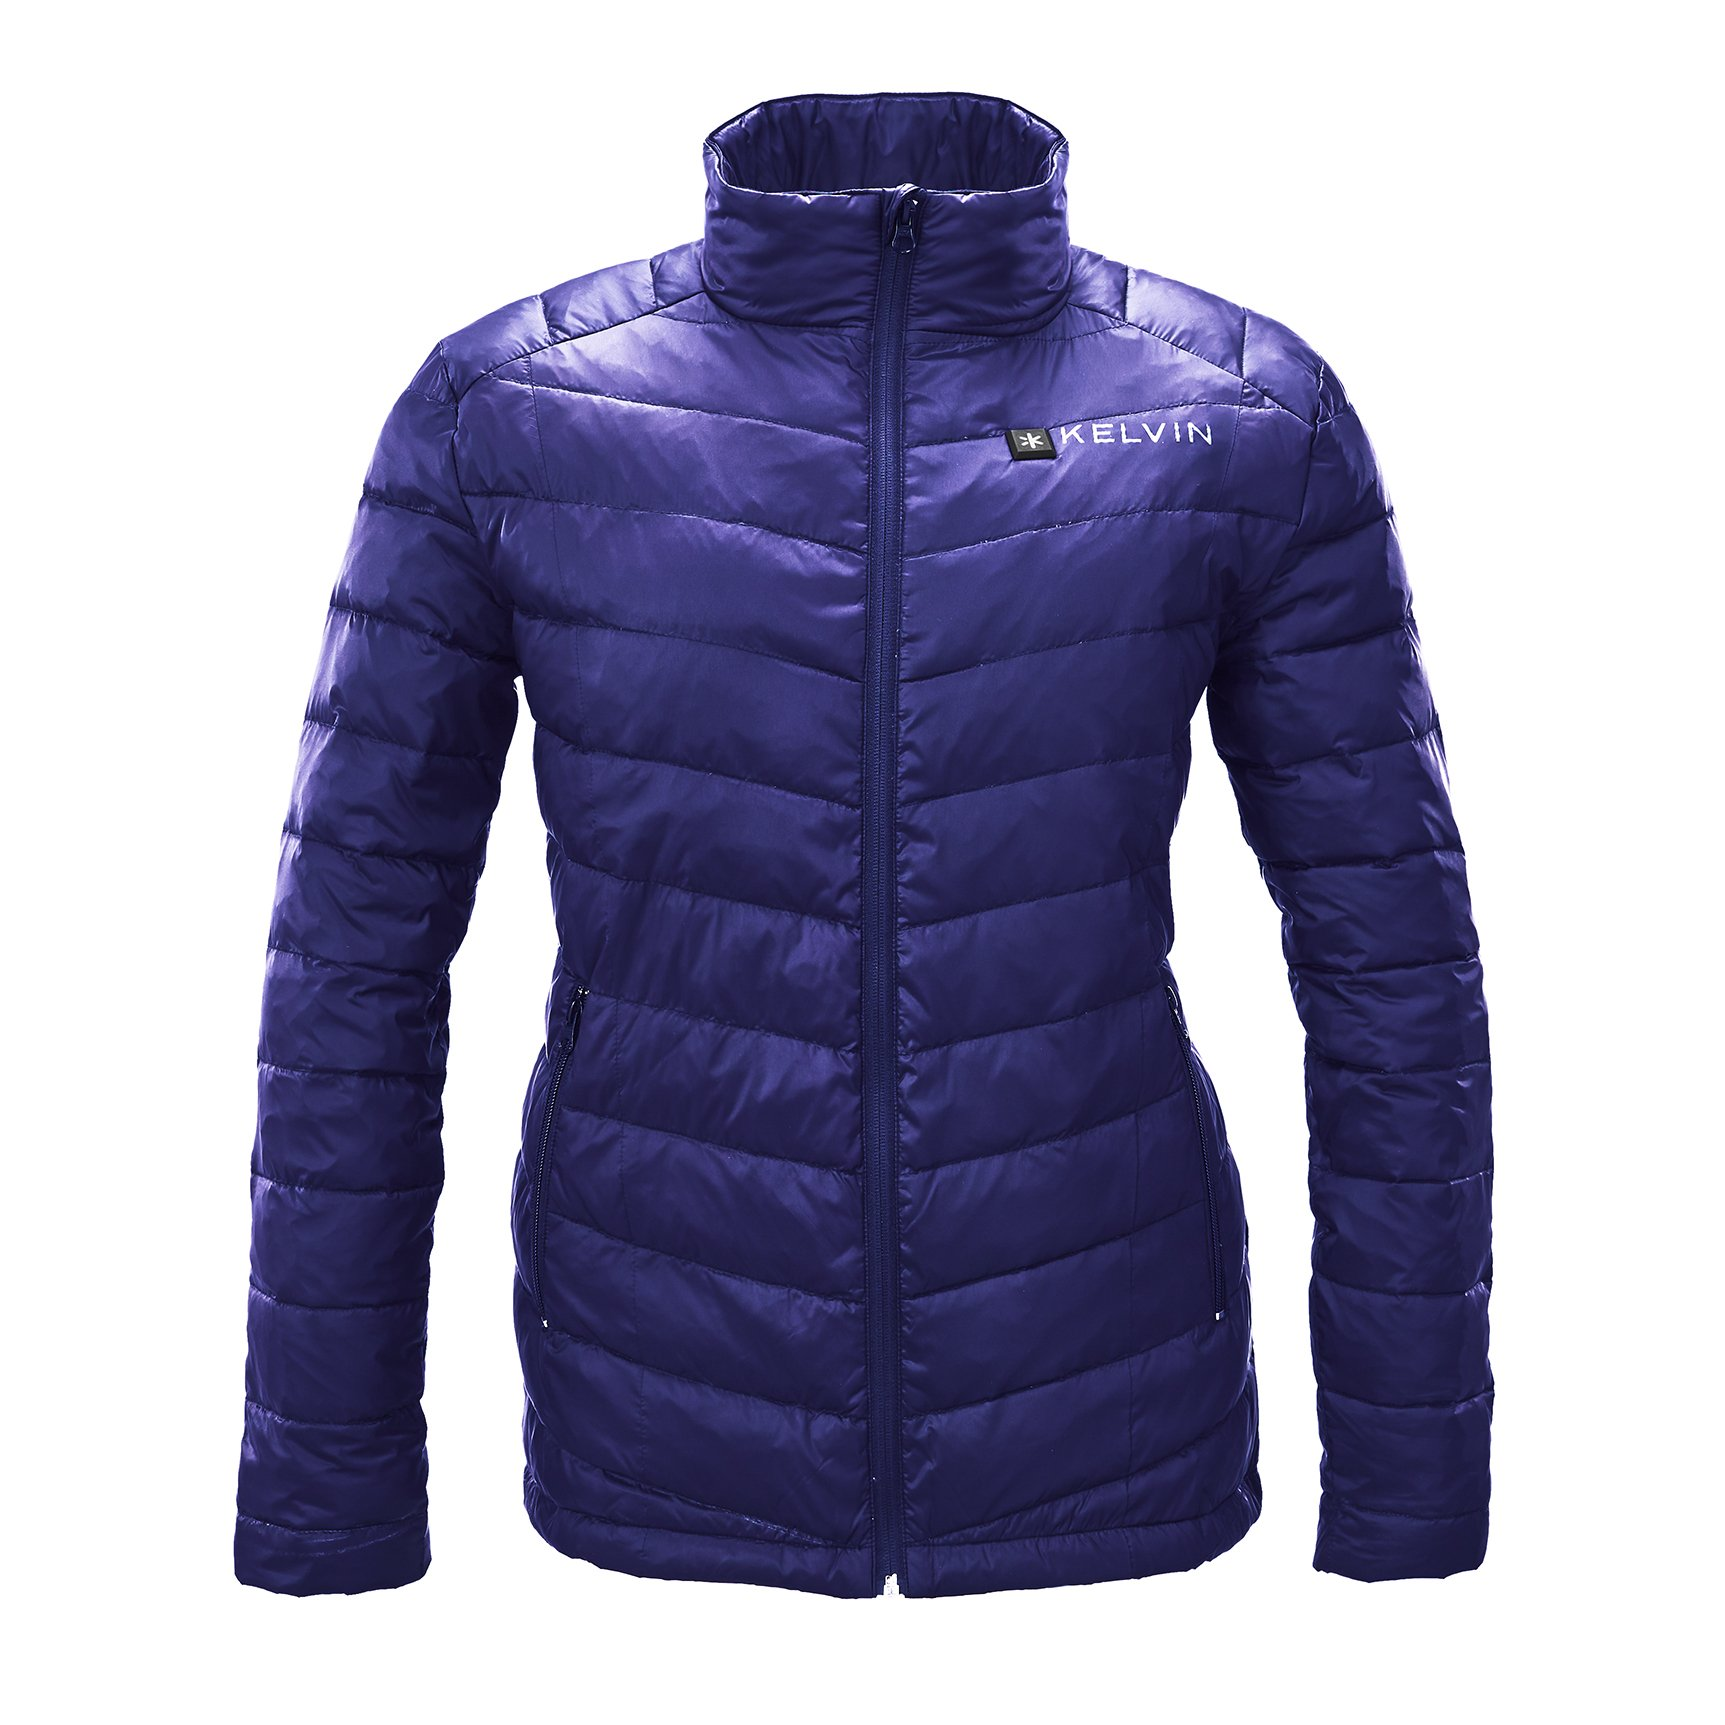 Kelvin Heated Jacket For Women - 5 Heat Zones + 10Hr Battery For The Finest Heated Coat | charges Cell Phones, Extreme Weather + Rip Resistant, 90/10 Duck Down Puffer Jacket | Cermak, Blue - Large